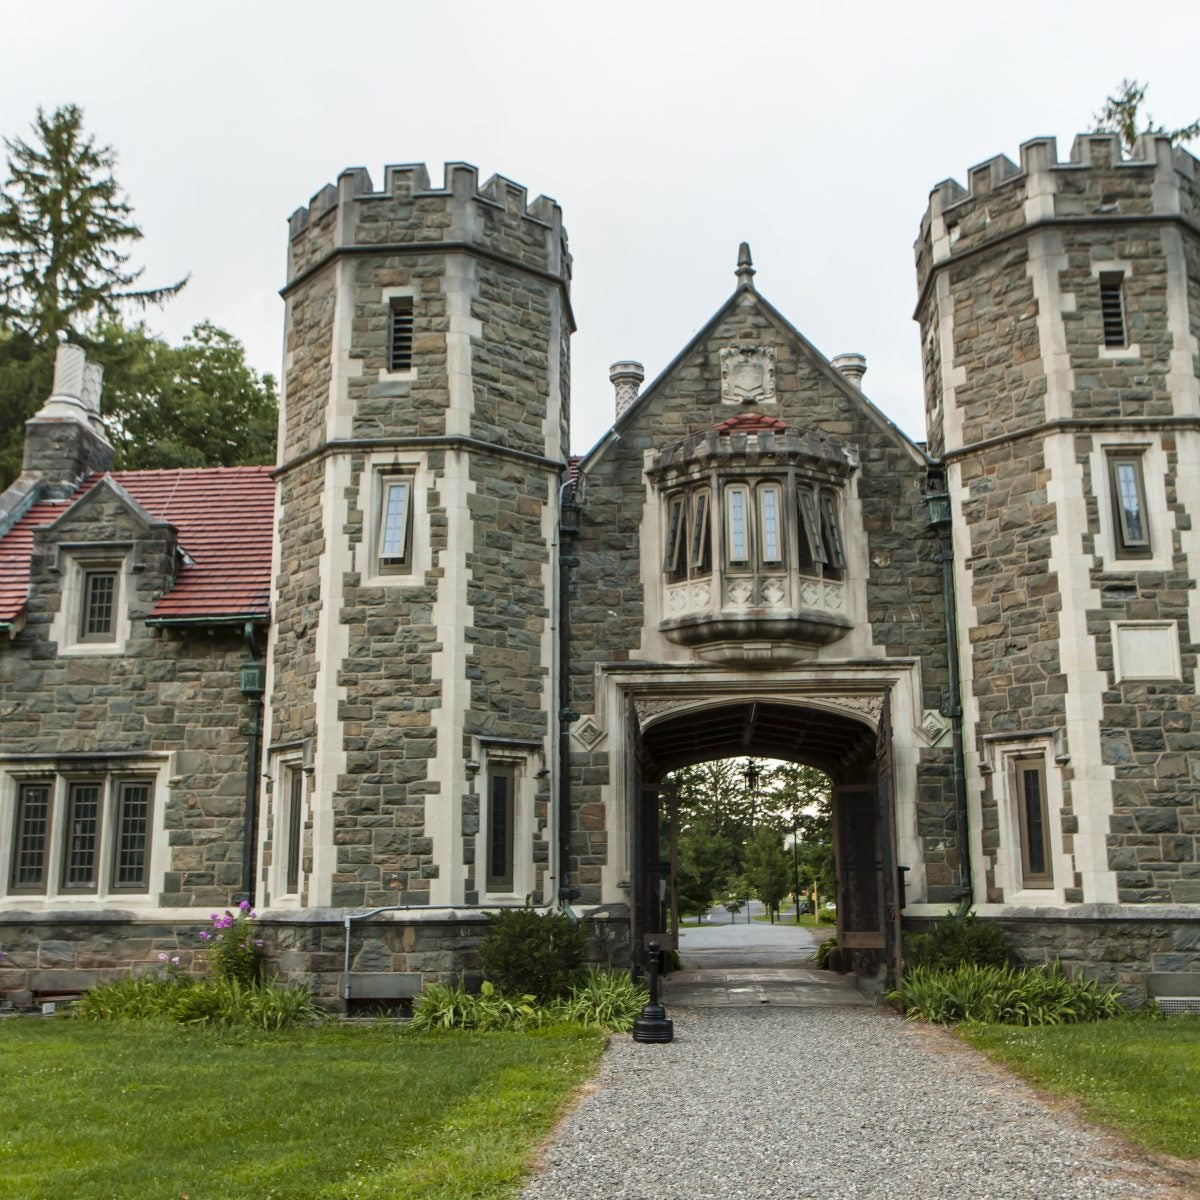 Bard College Announces Free Tuition for Formerly Incarcerated Students